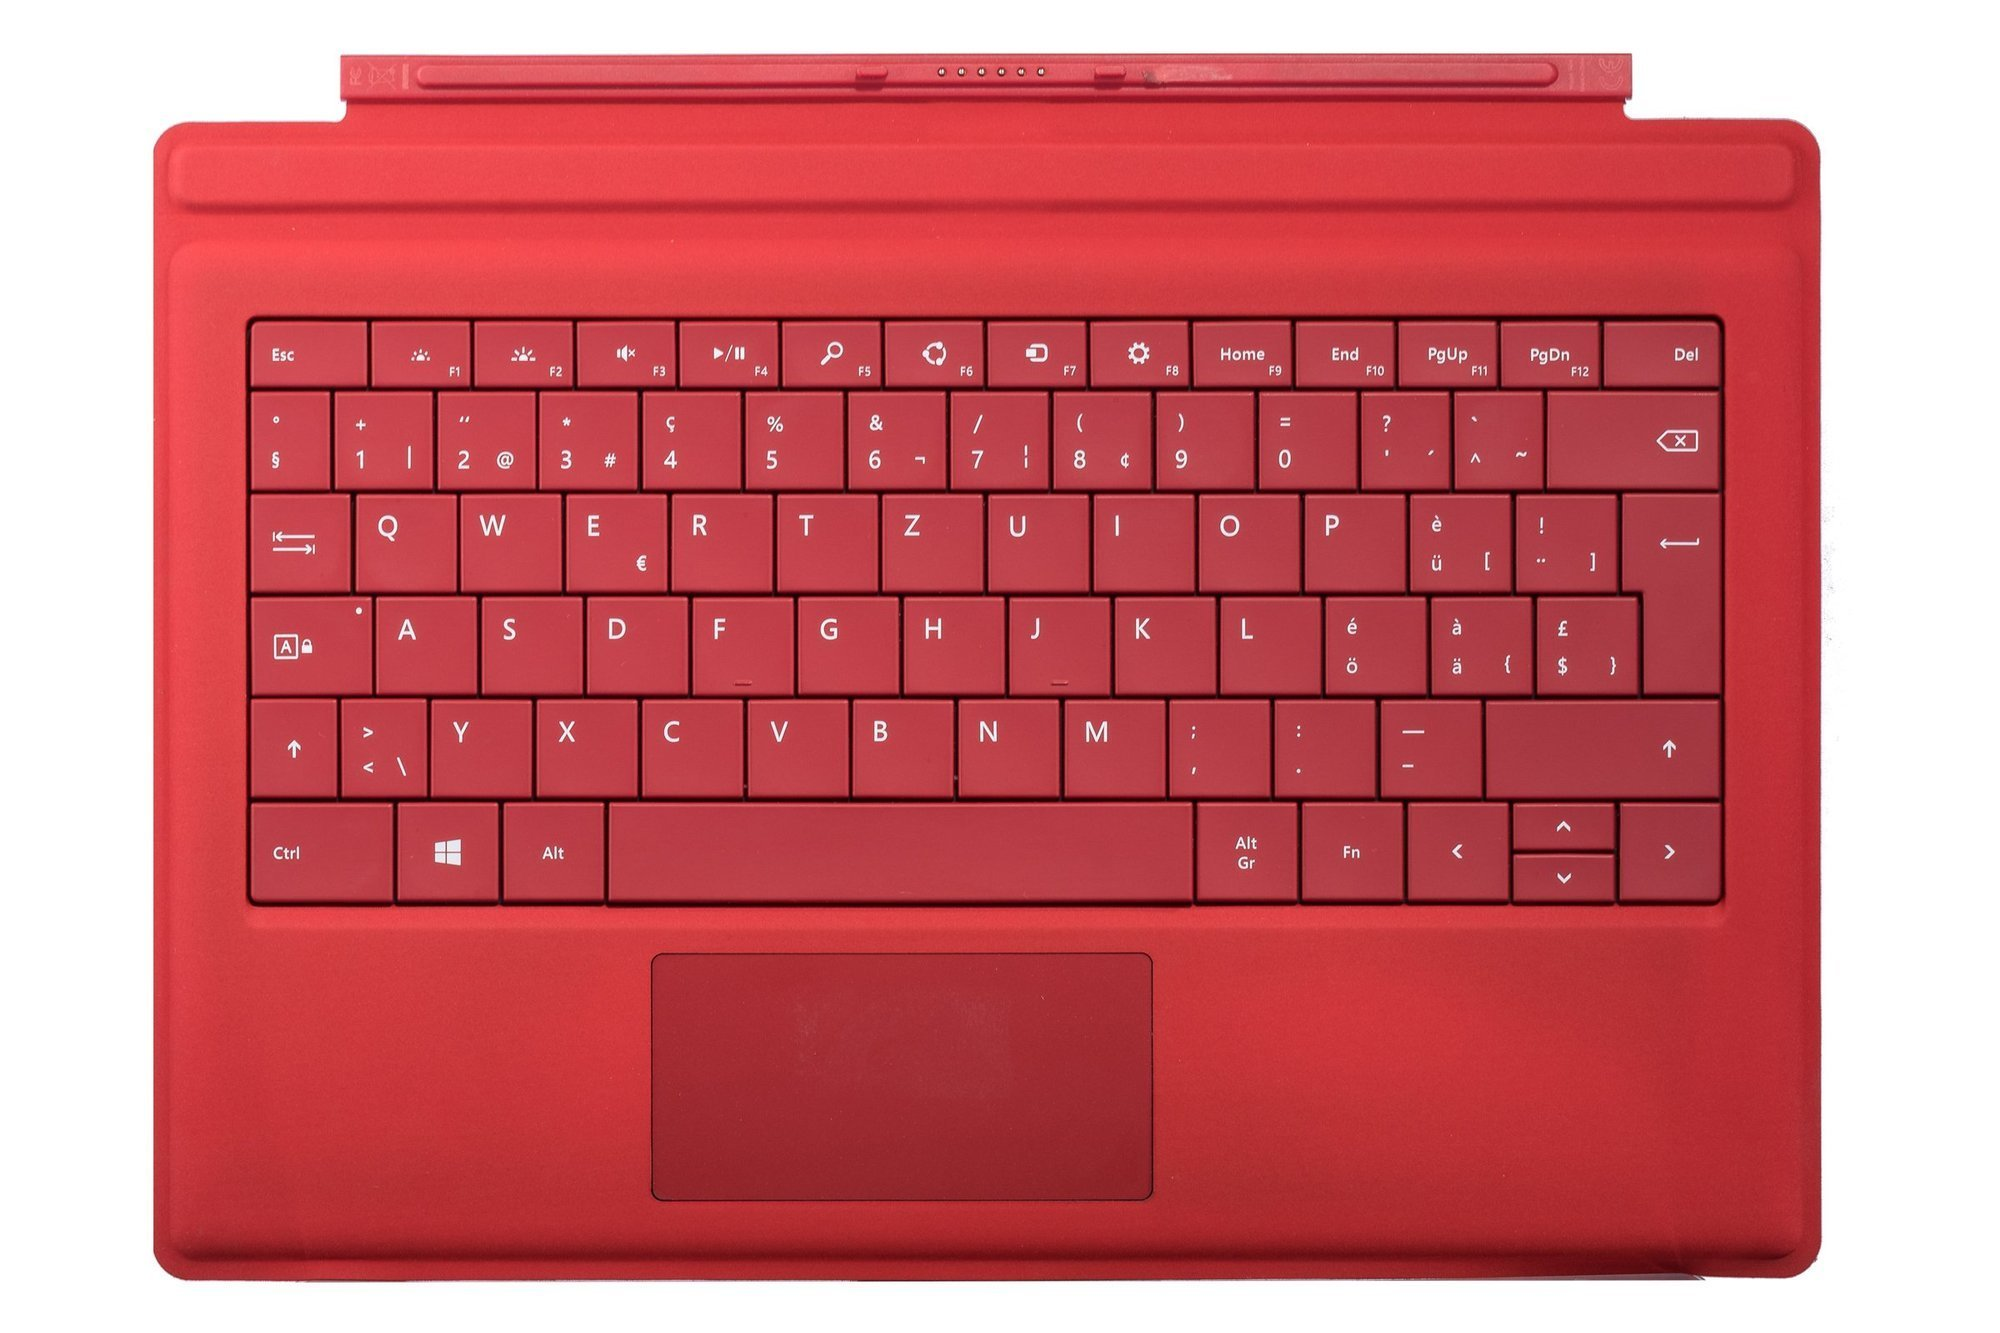 Keyboard Microsoft Surface Type Cover Pro 3 Red QWERTZ (Swiss) Grade B